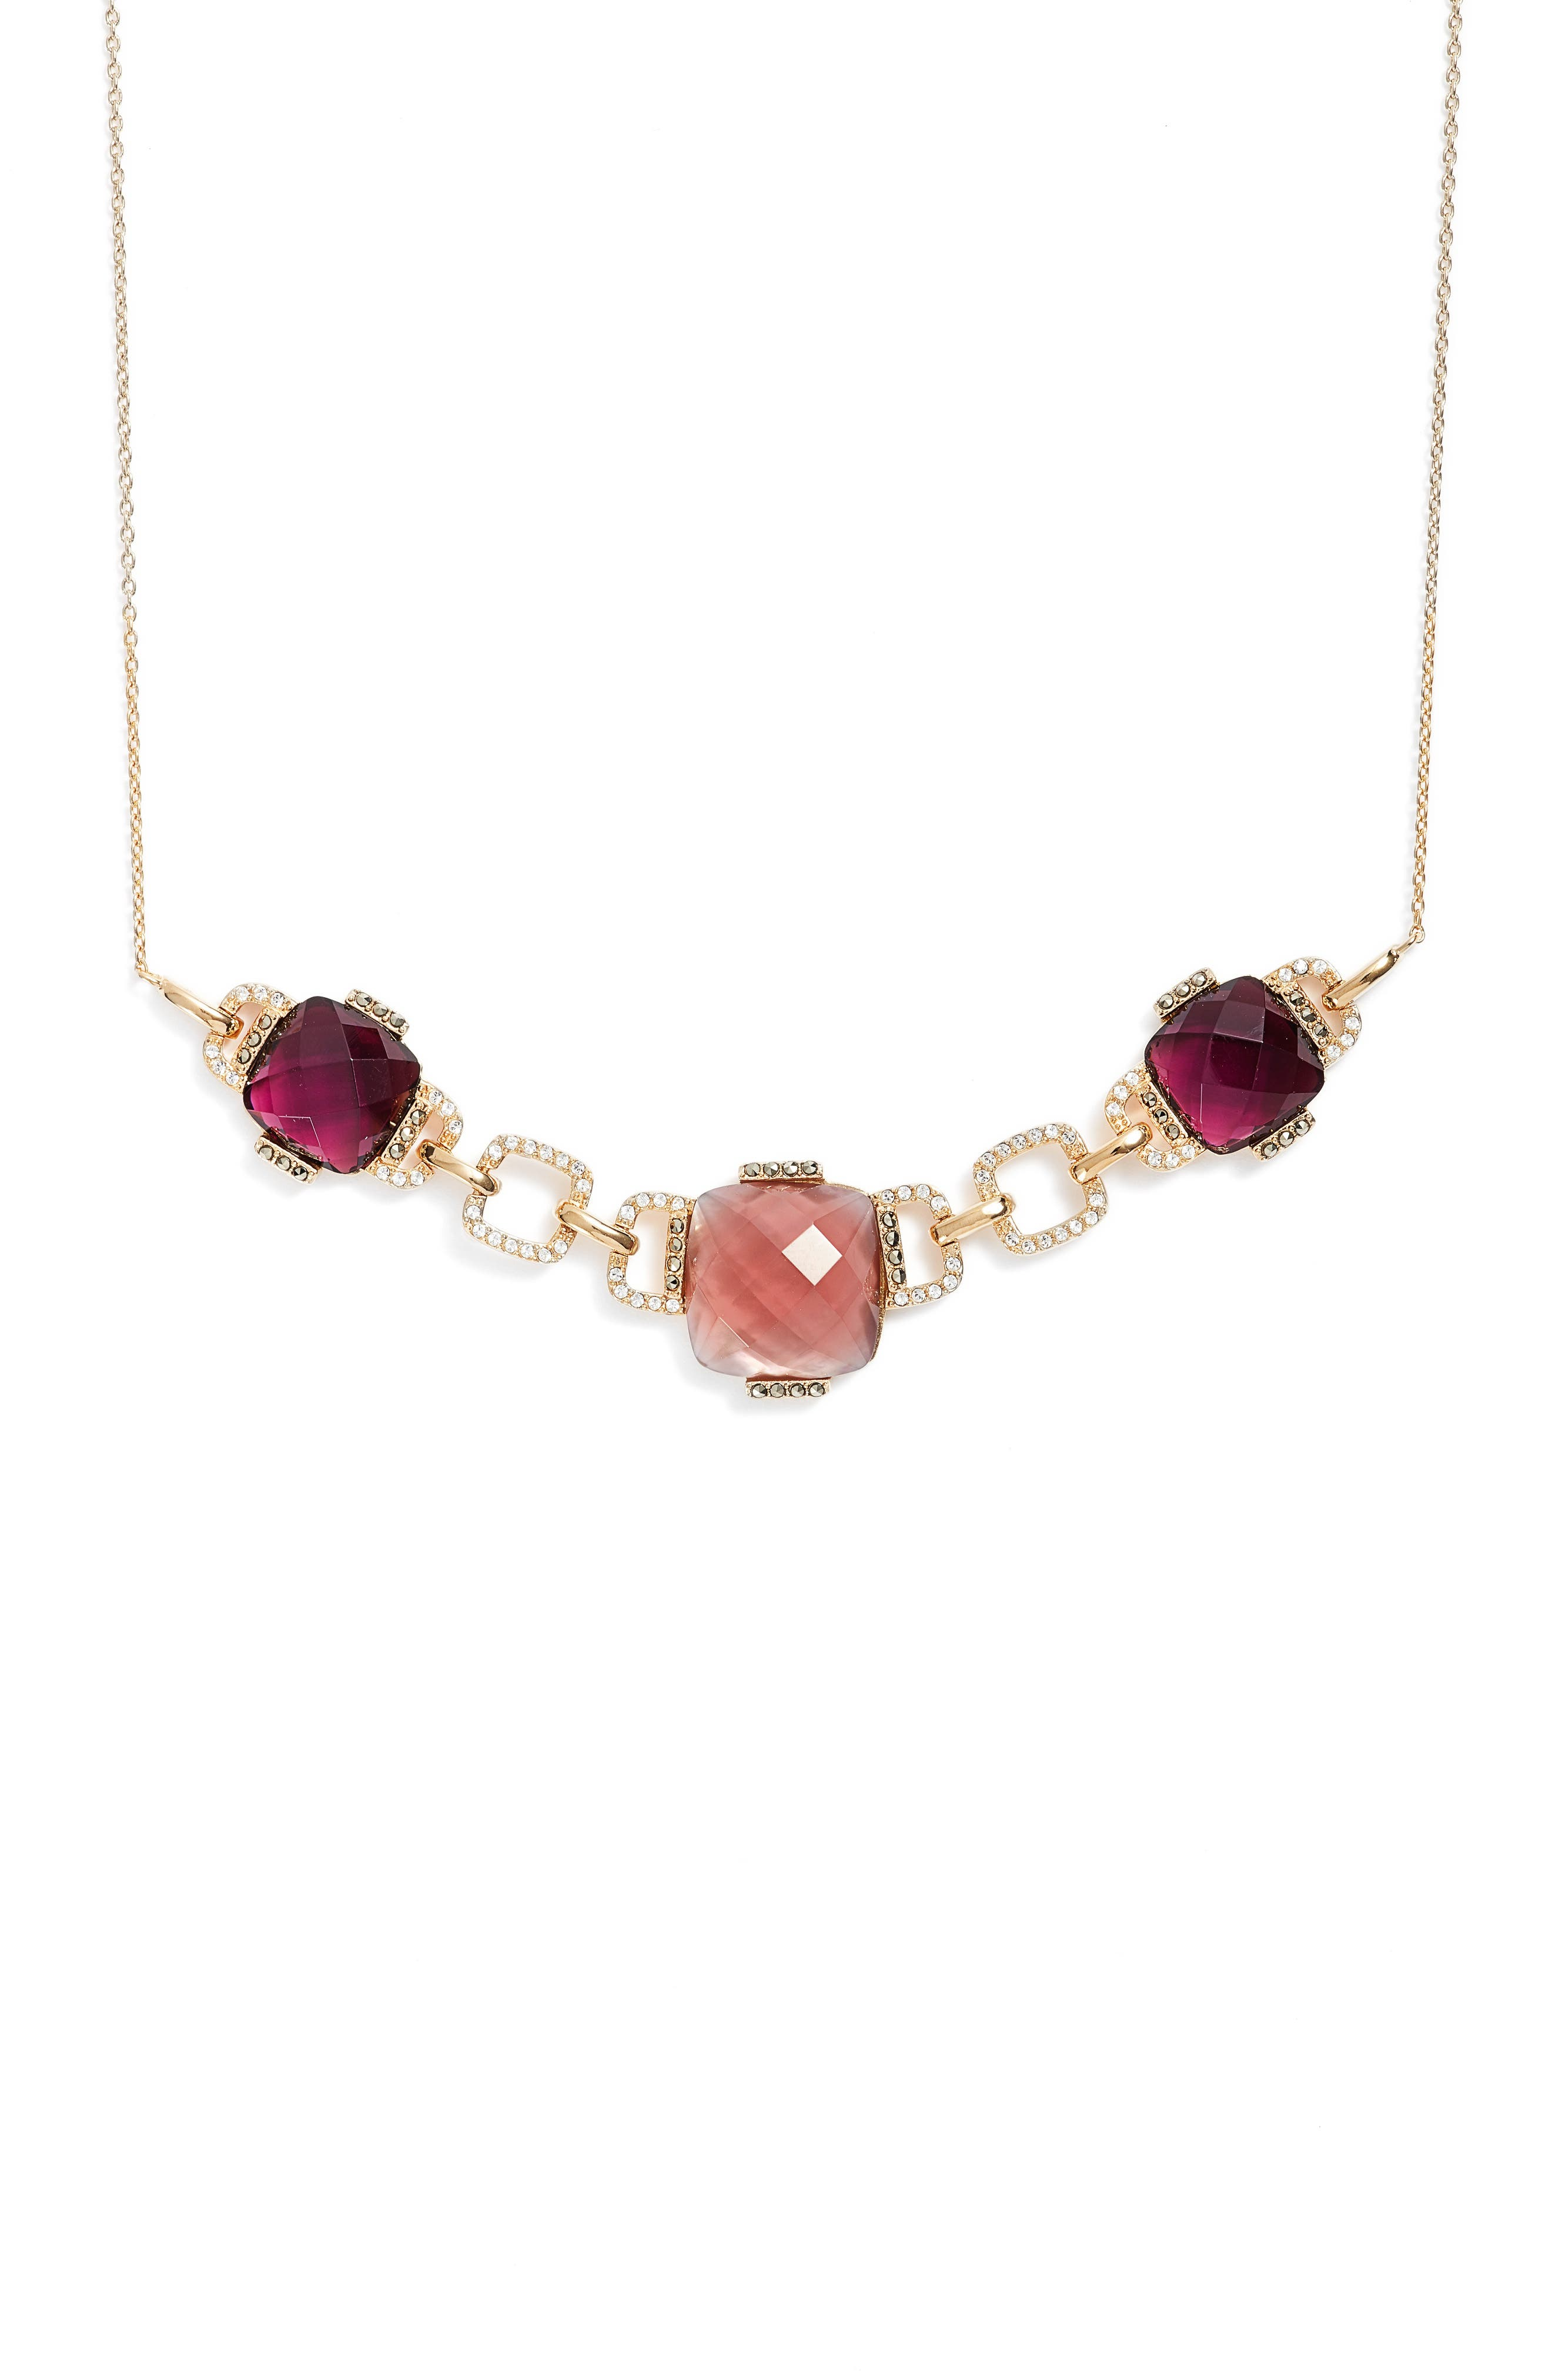 Frontal Collar Necklace,                             Alternate thumbnail 2, color,                             Blush/ Gold